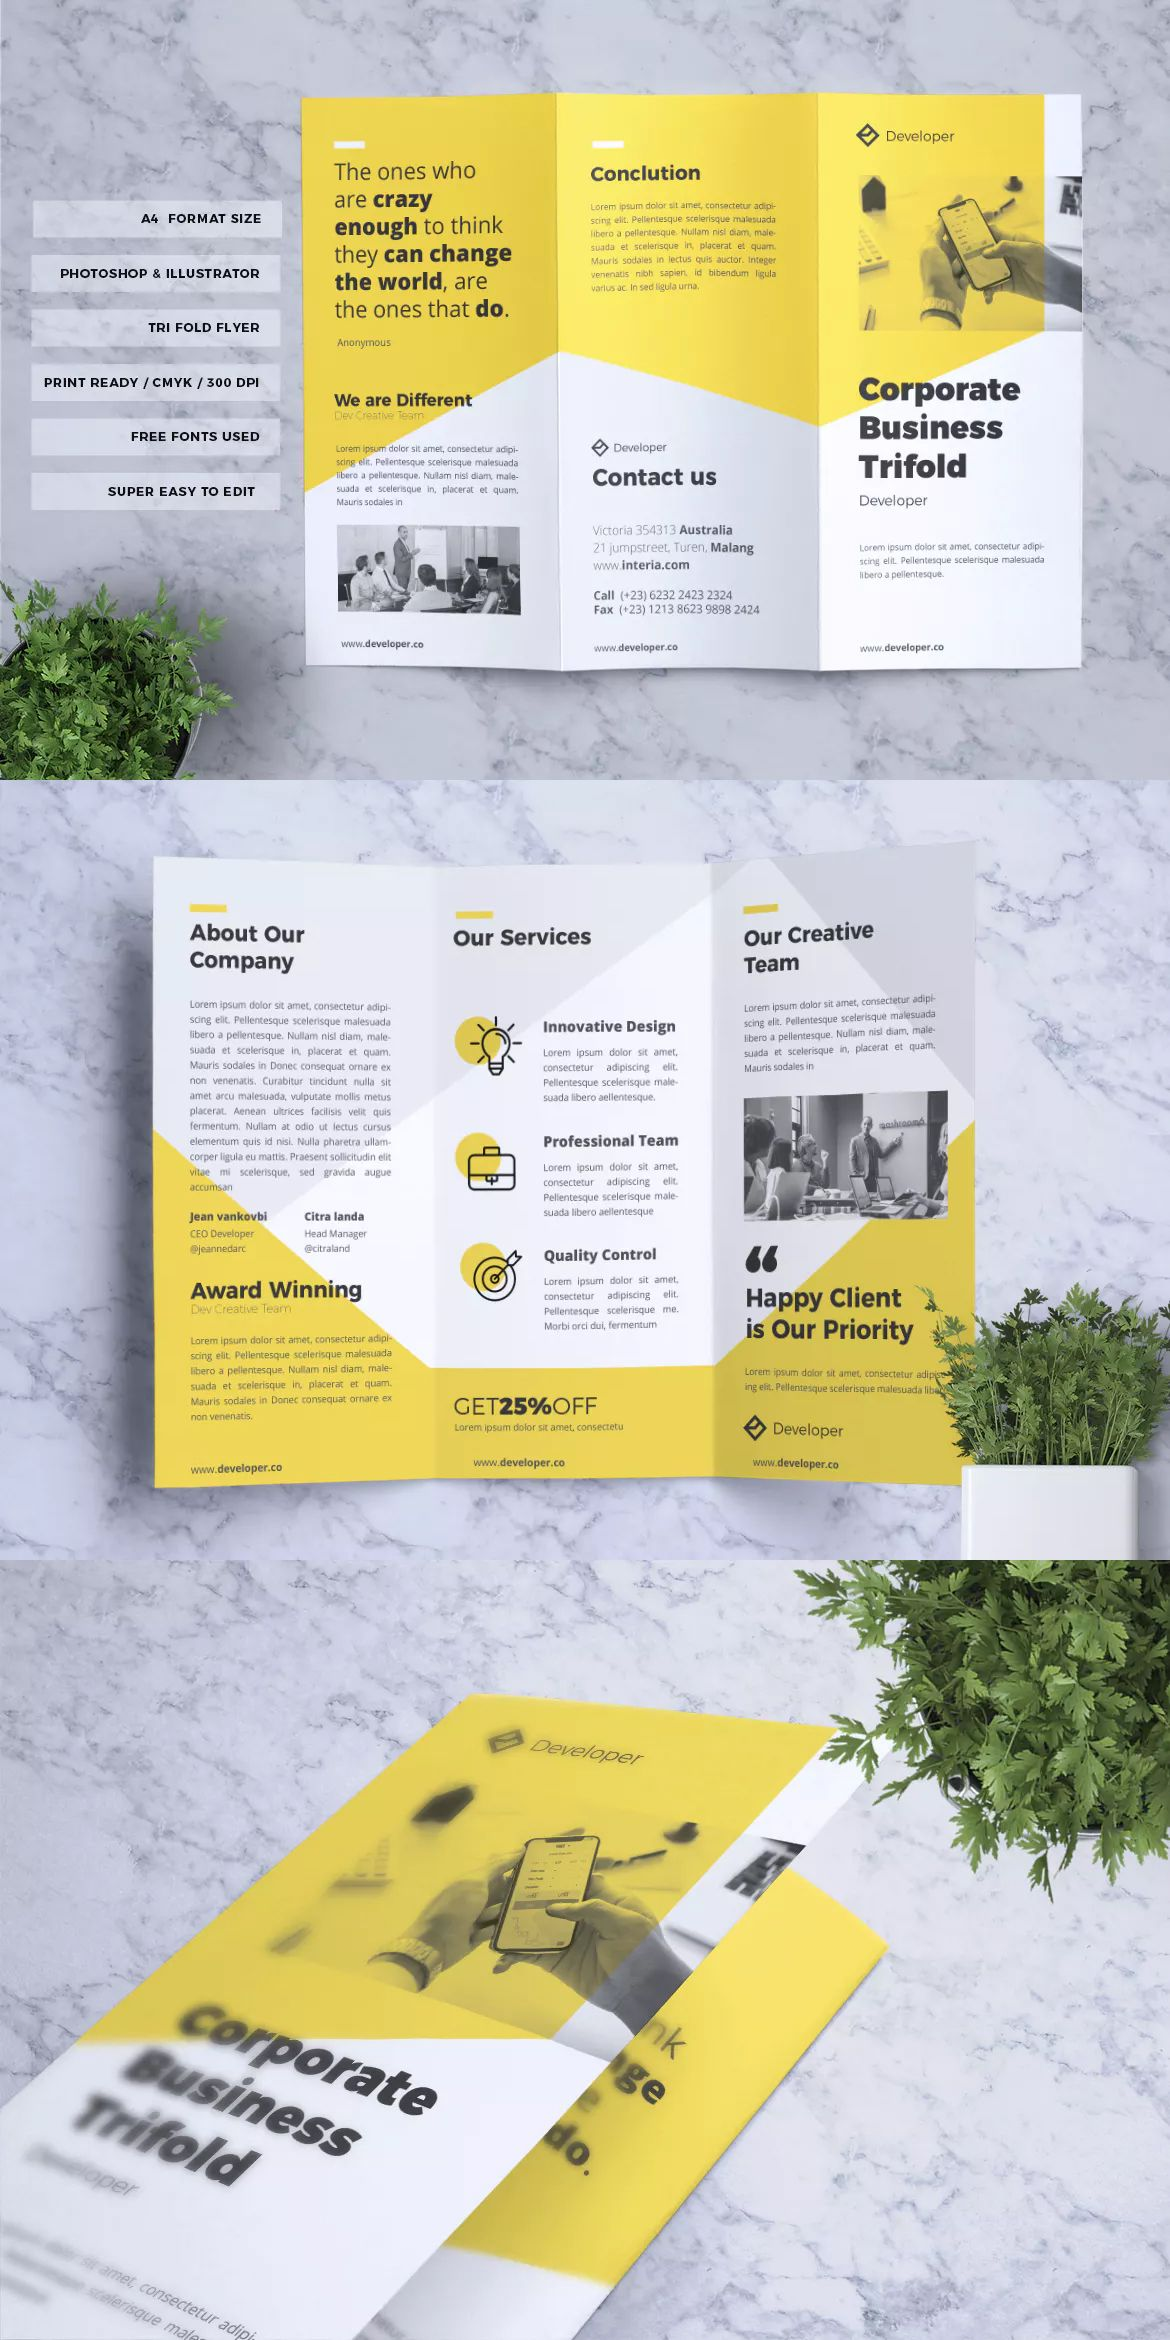 Corporate Business Flyer Template AI, EPS, PSD - A4 format paper size. Download